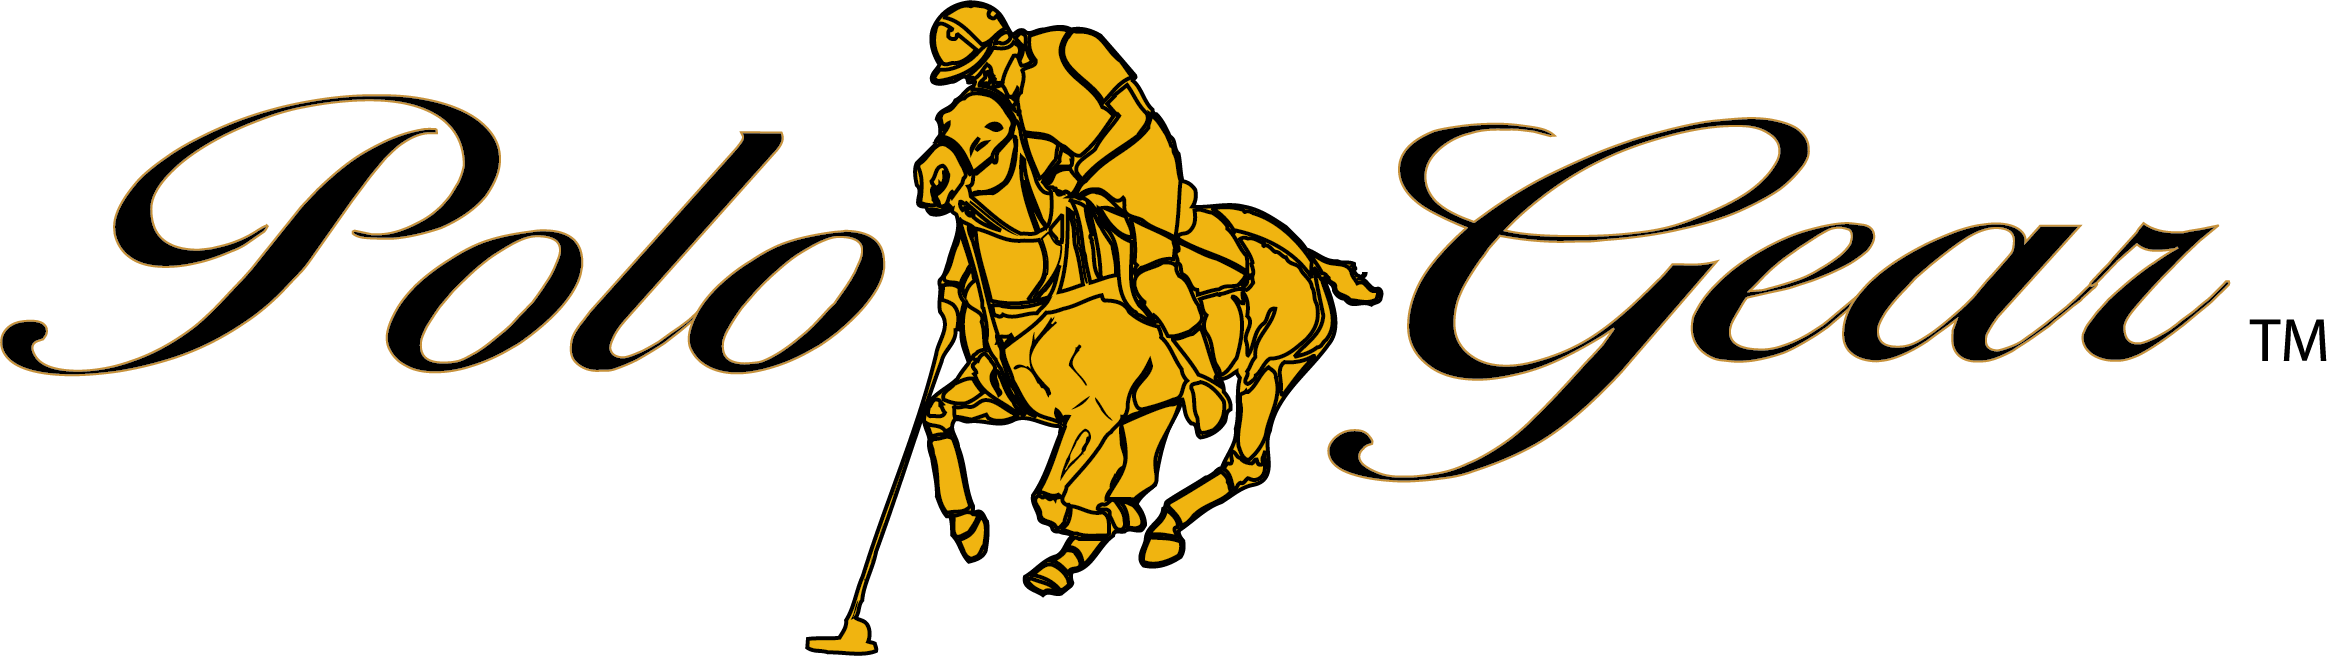 Polo Gear.png